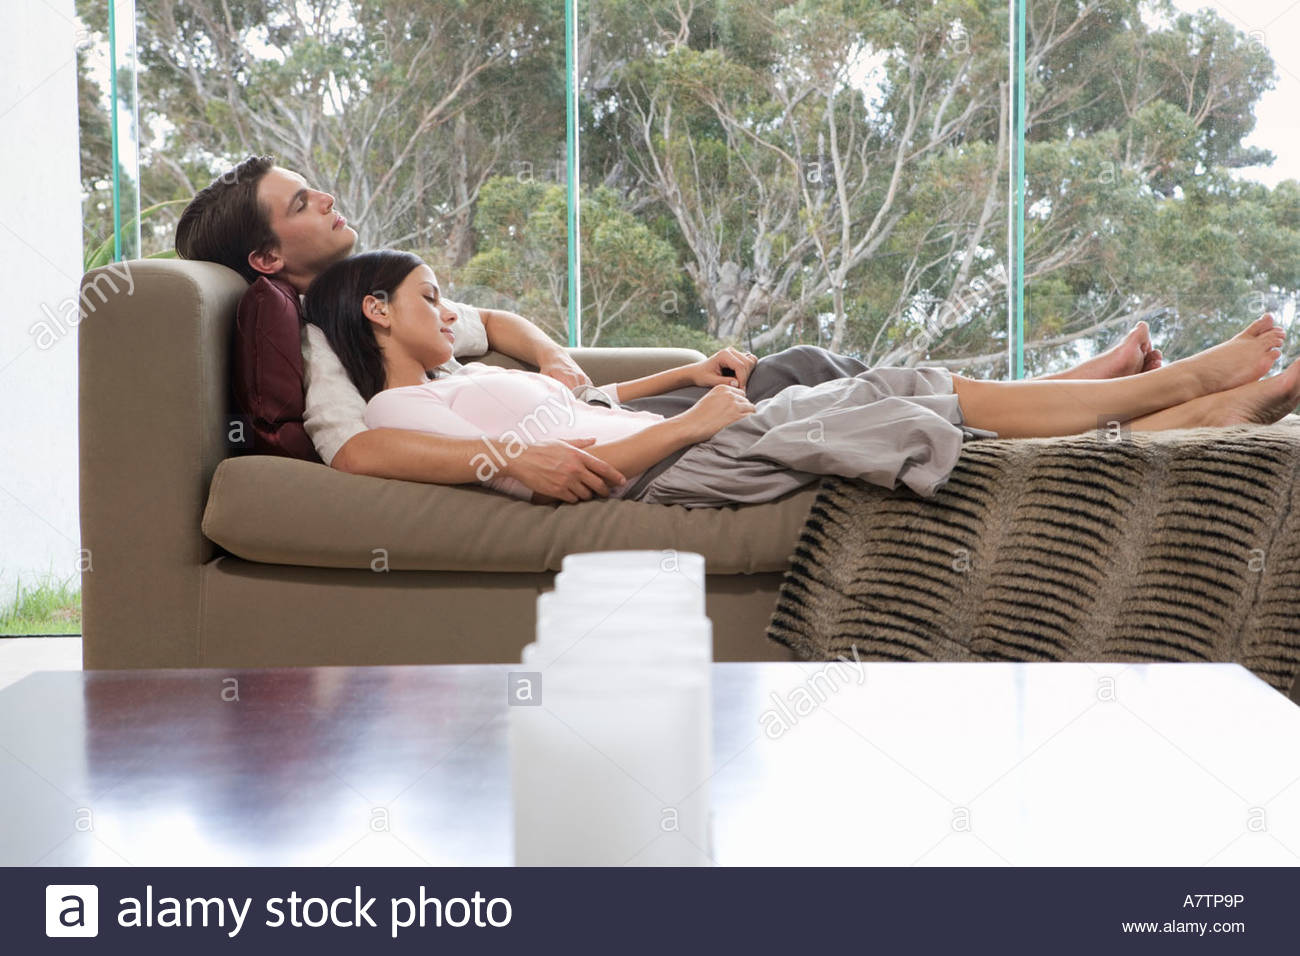 A young couple laying on a sofa - Stock Image